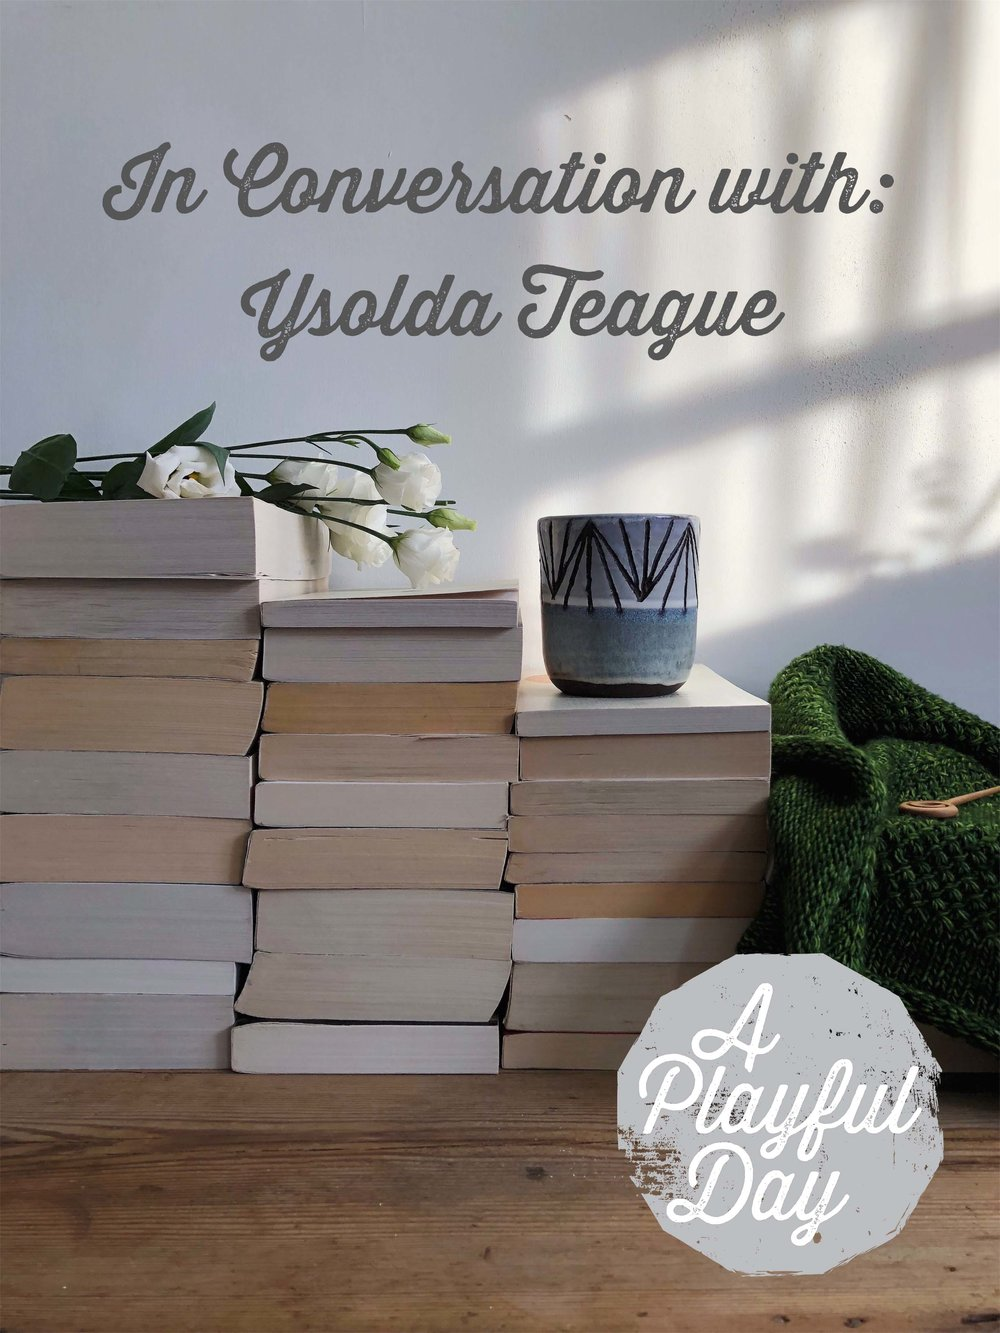 In Conversation with Ysolda Teague